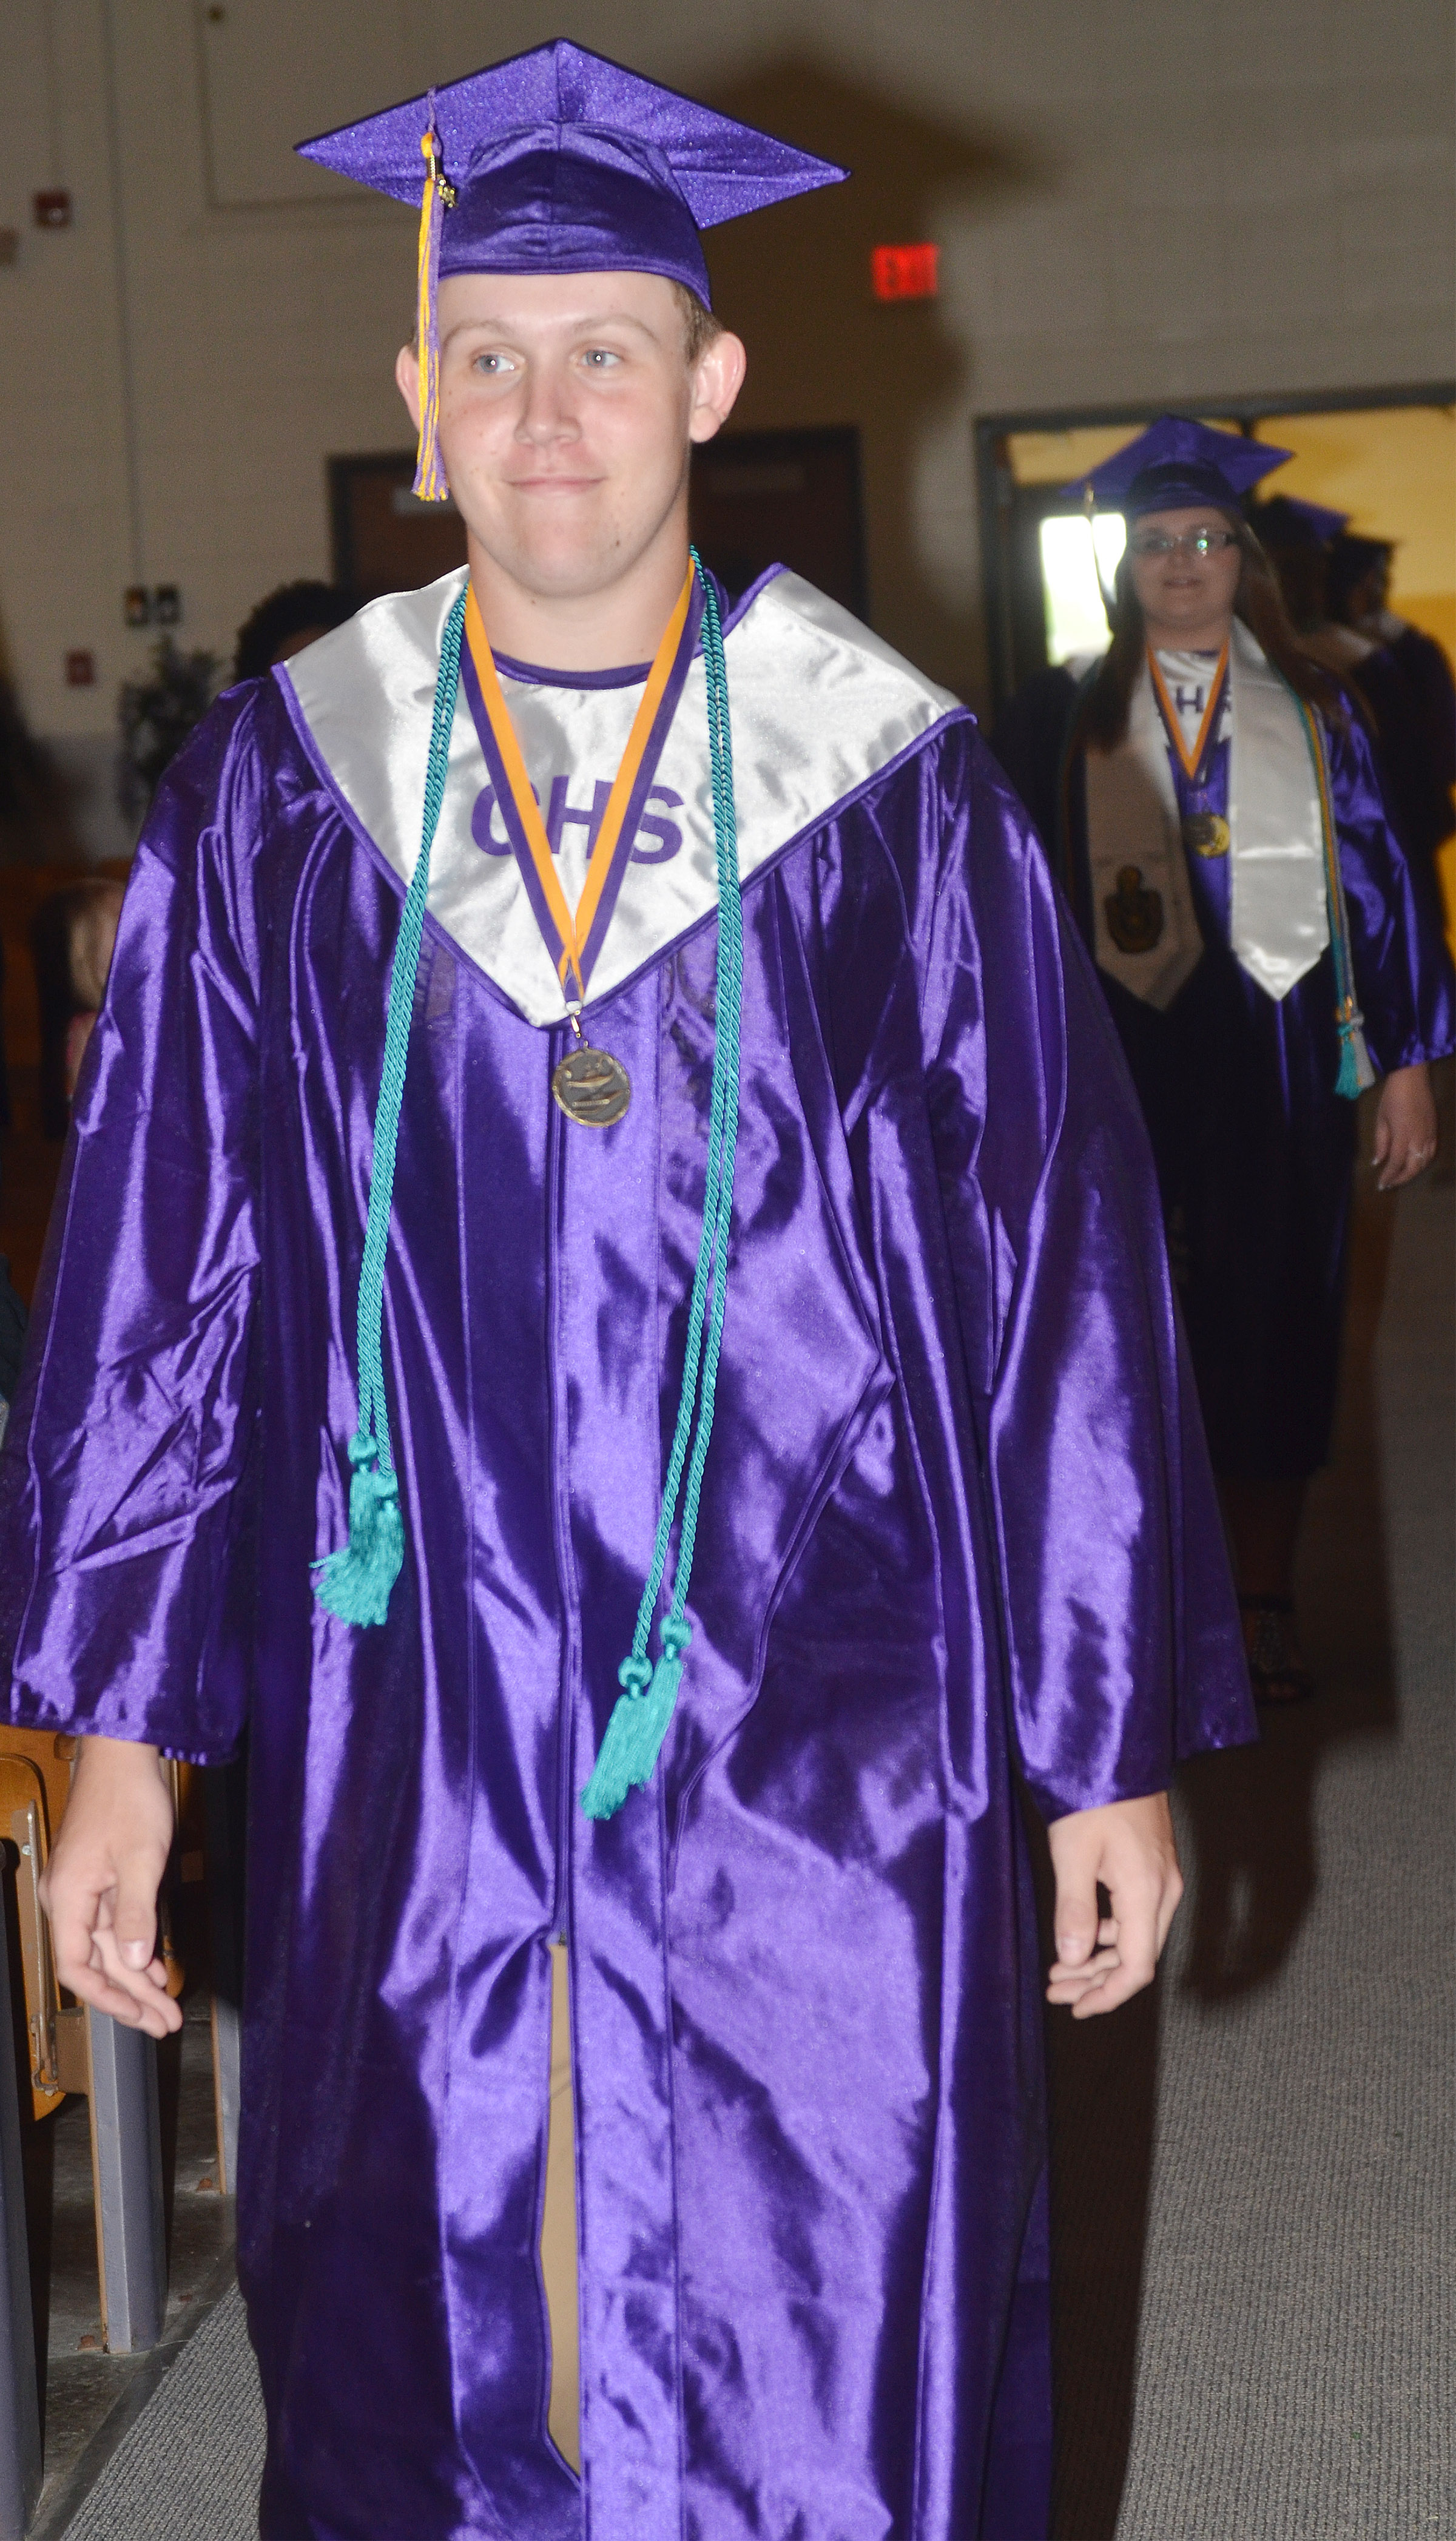 CHS senior Jared Brewster walks in Hamilton Auditorium for the baccalaureate ceremony.